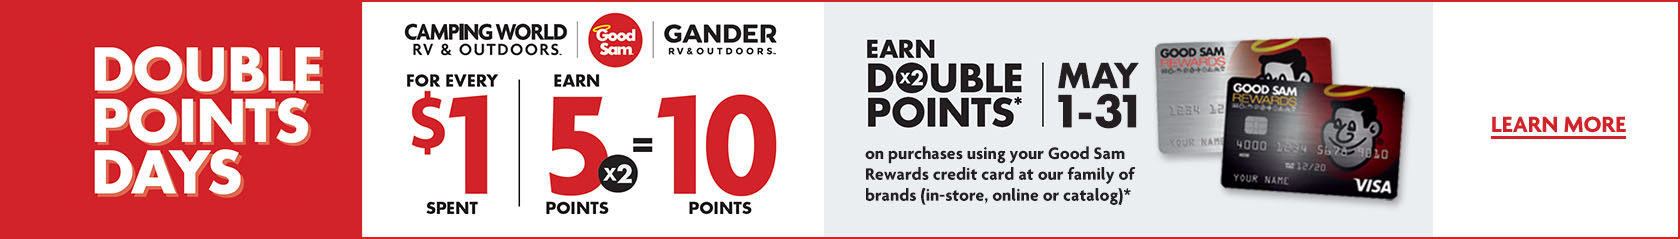 Double Points Days